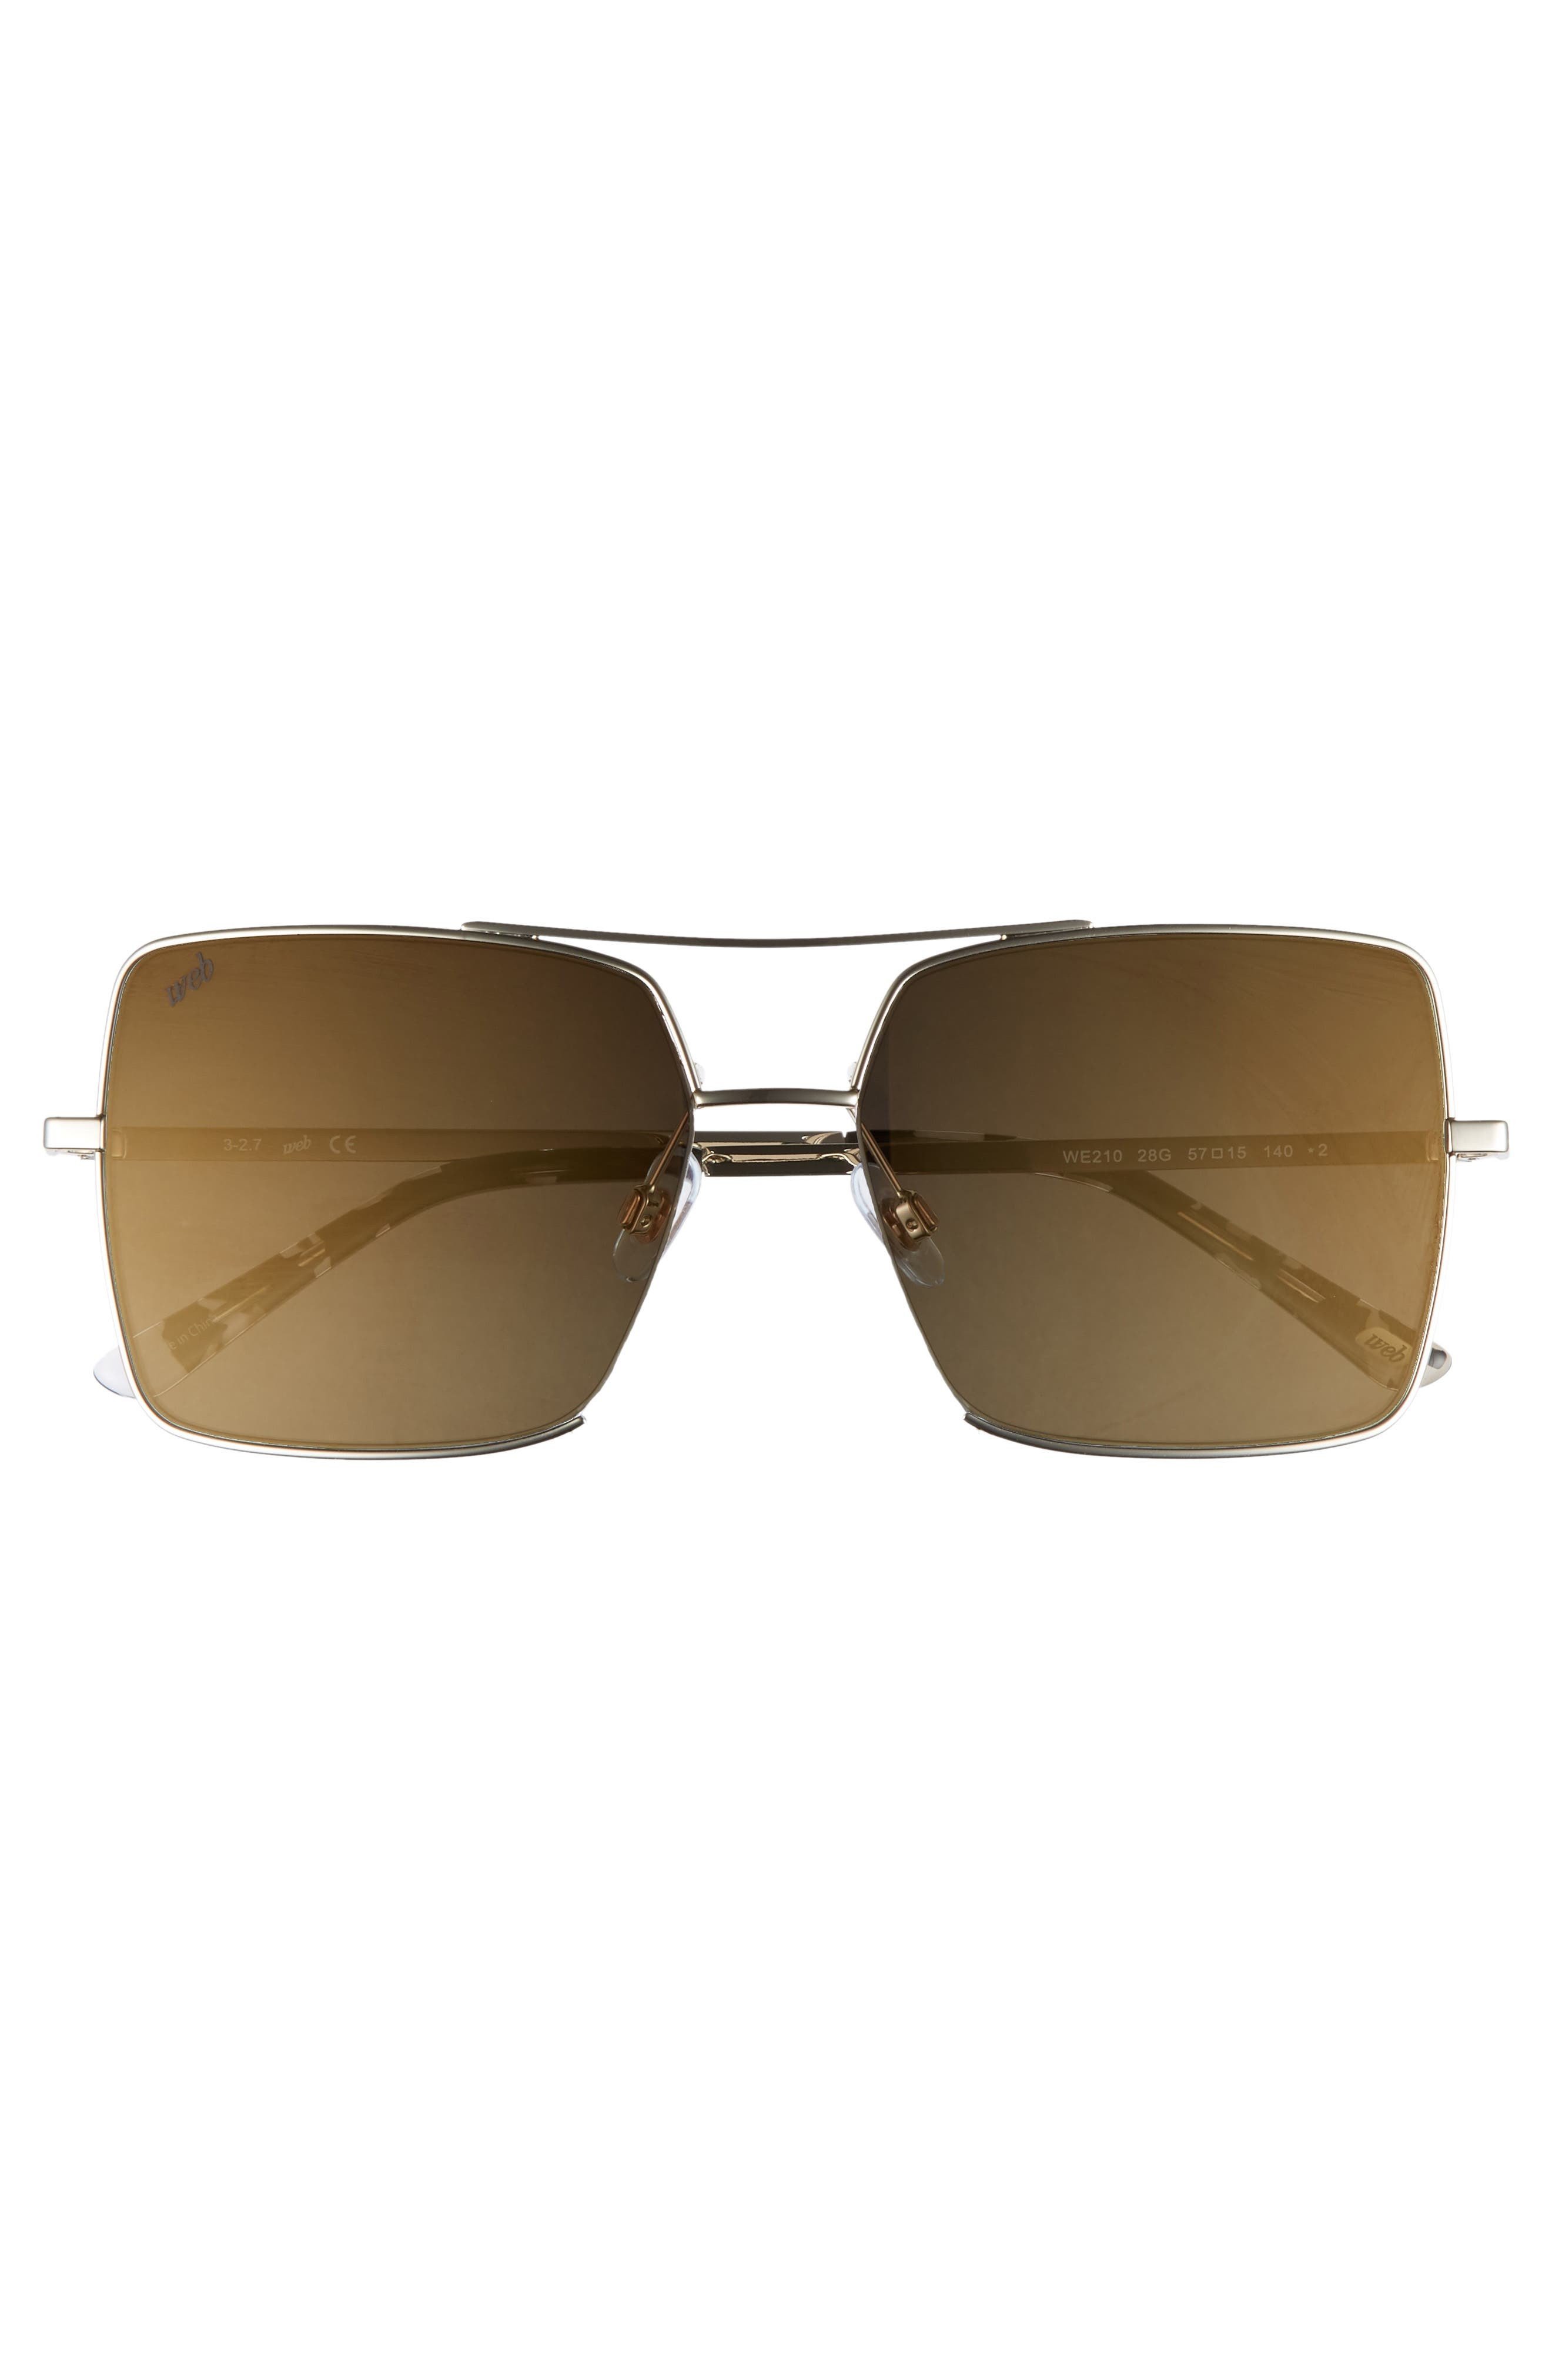 57mm Square Metal Aviator Sunglasses,                             Alternate thumbnail 3, color,                             GOLD/ BROWN